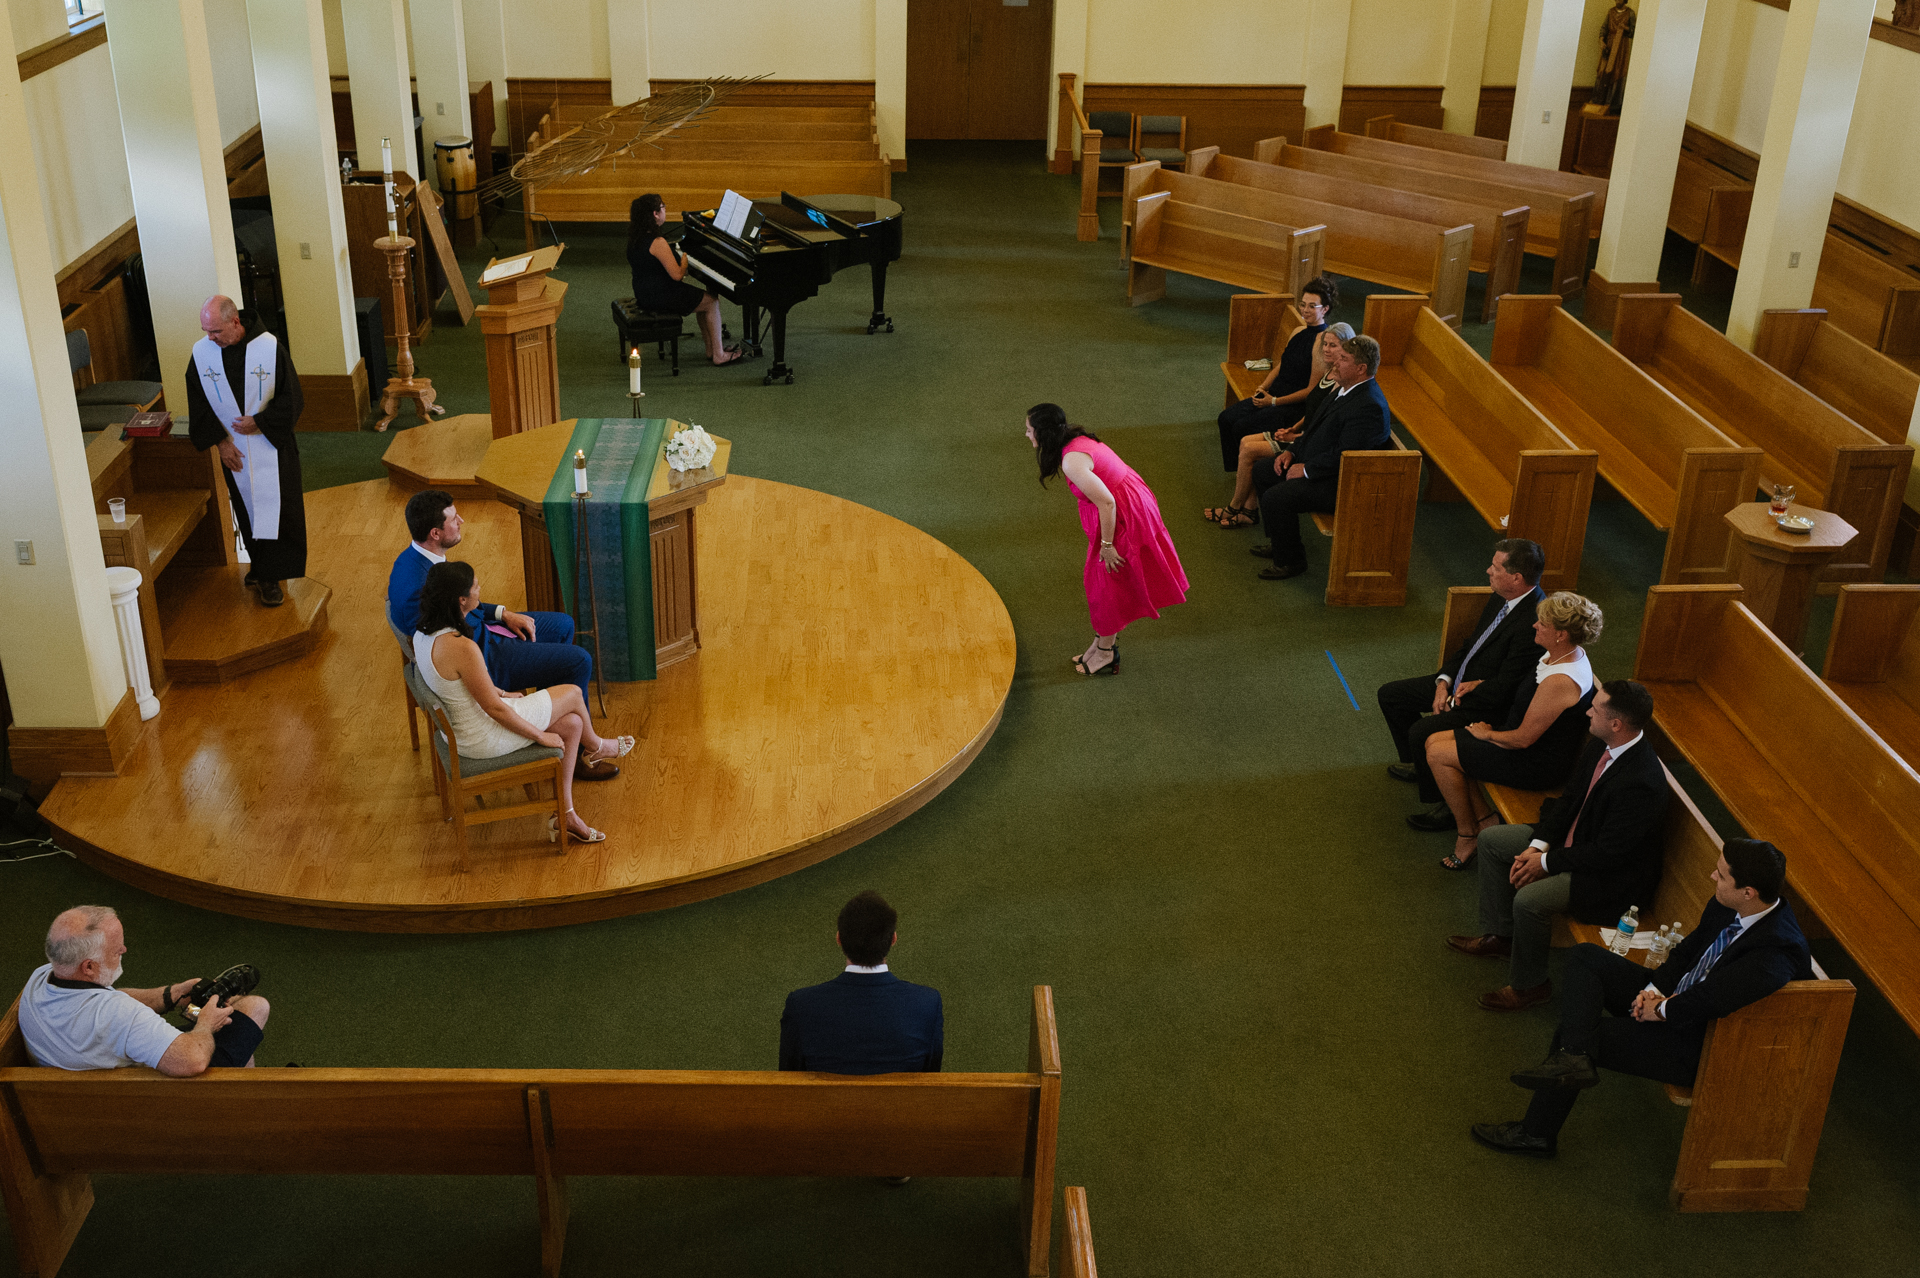 St. Mary of the Angels Chapel, NY Wedding Photography | an overhead view from the balcony inside a the chapel